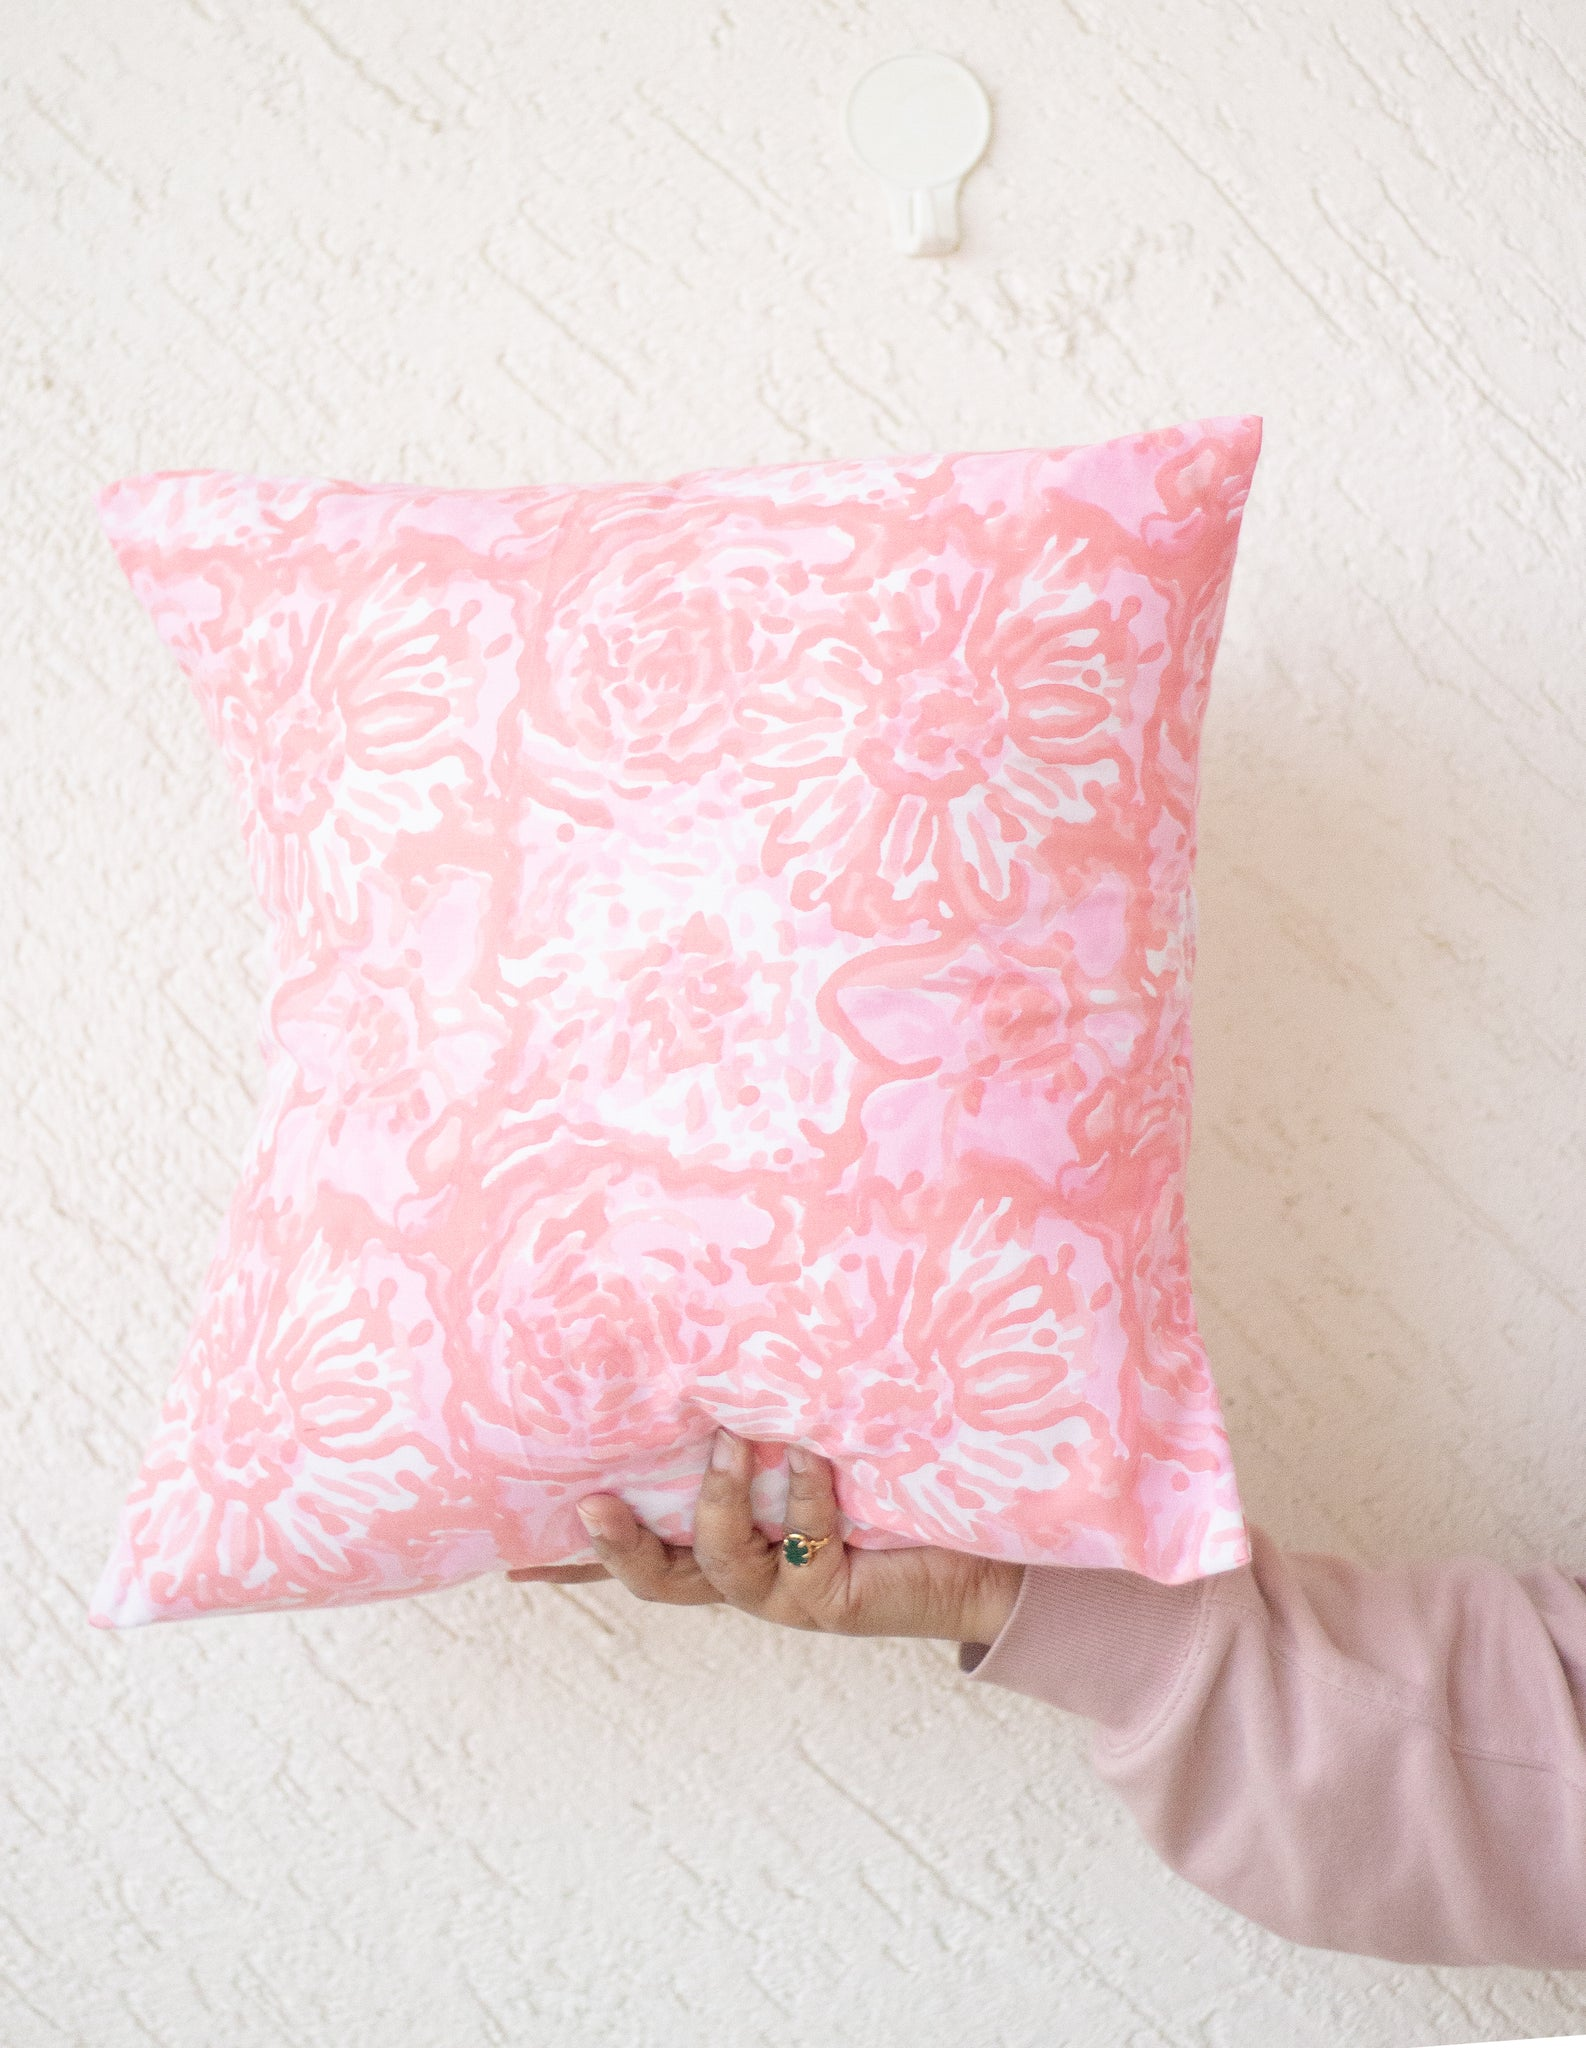 Block print decorative cushion covers - 16x16 inches - Pink and peach floral